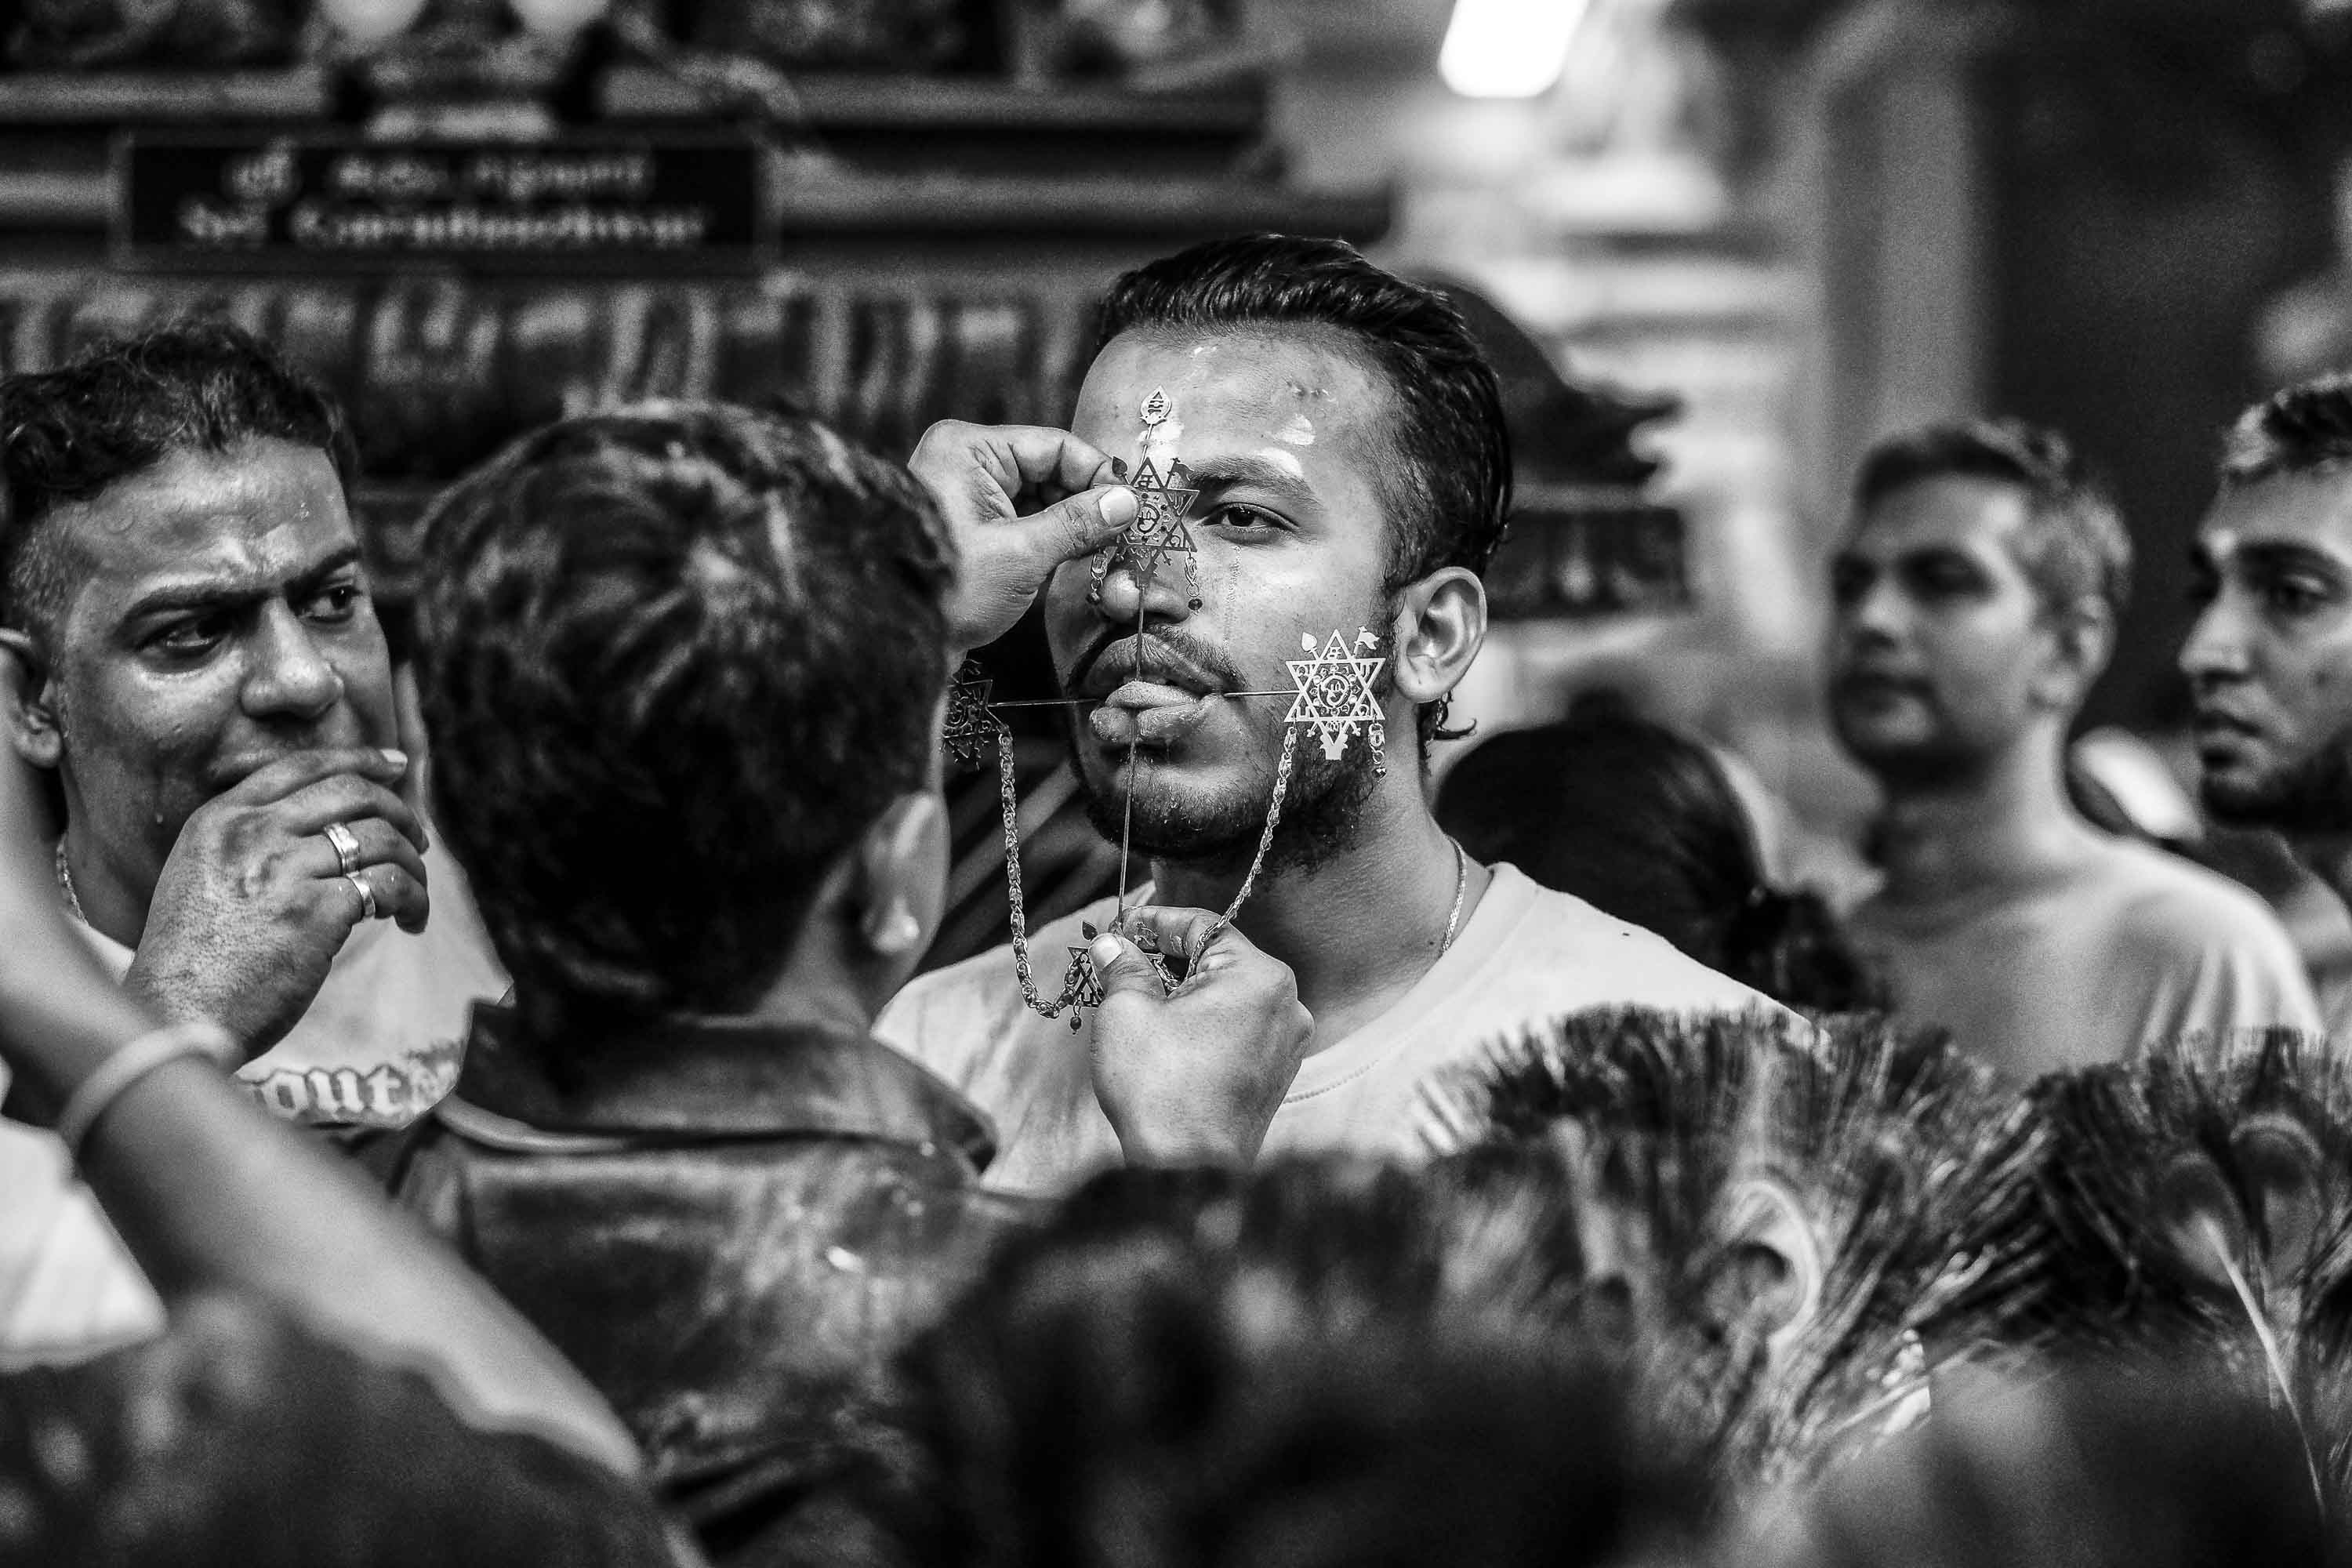 piercing tong man temple Little India Thaipusam Festival hindu Singapore photography jose jeuland documentary event